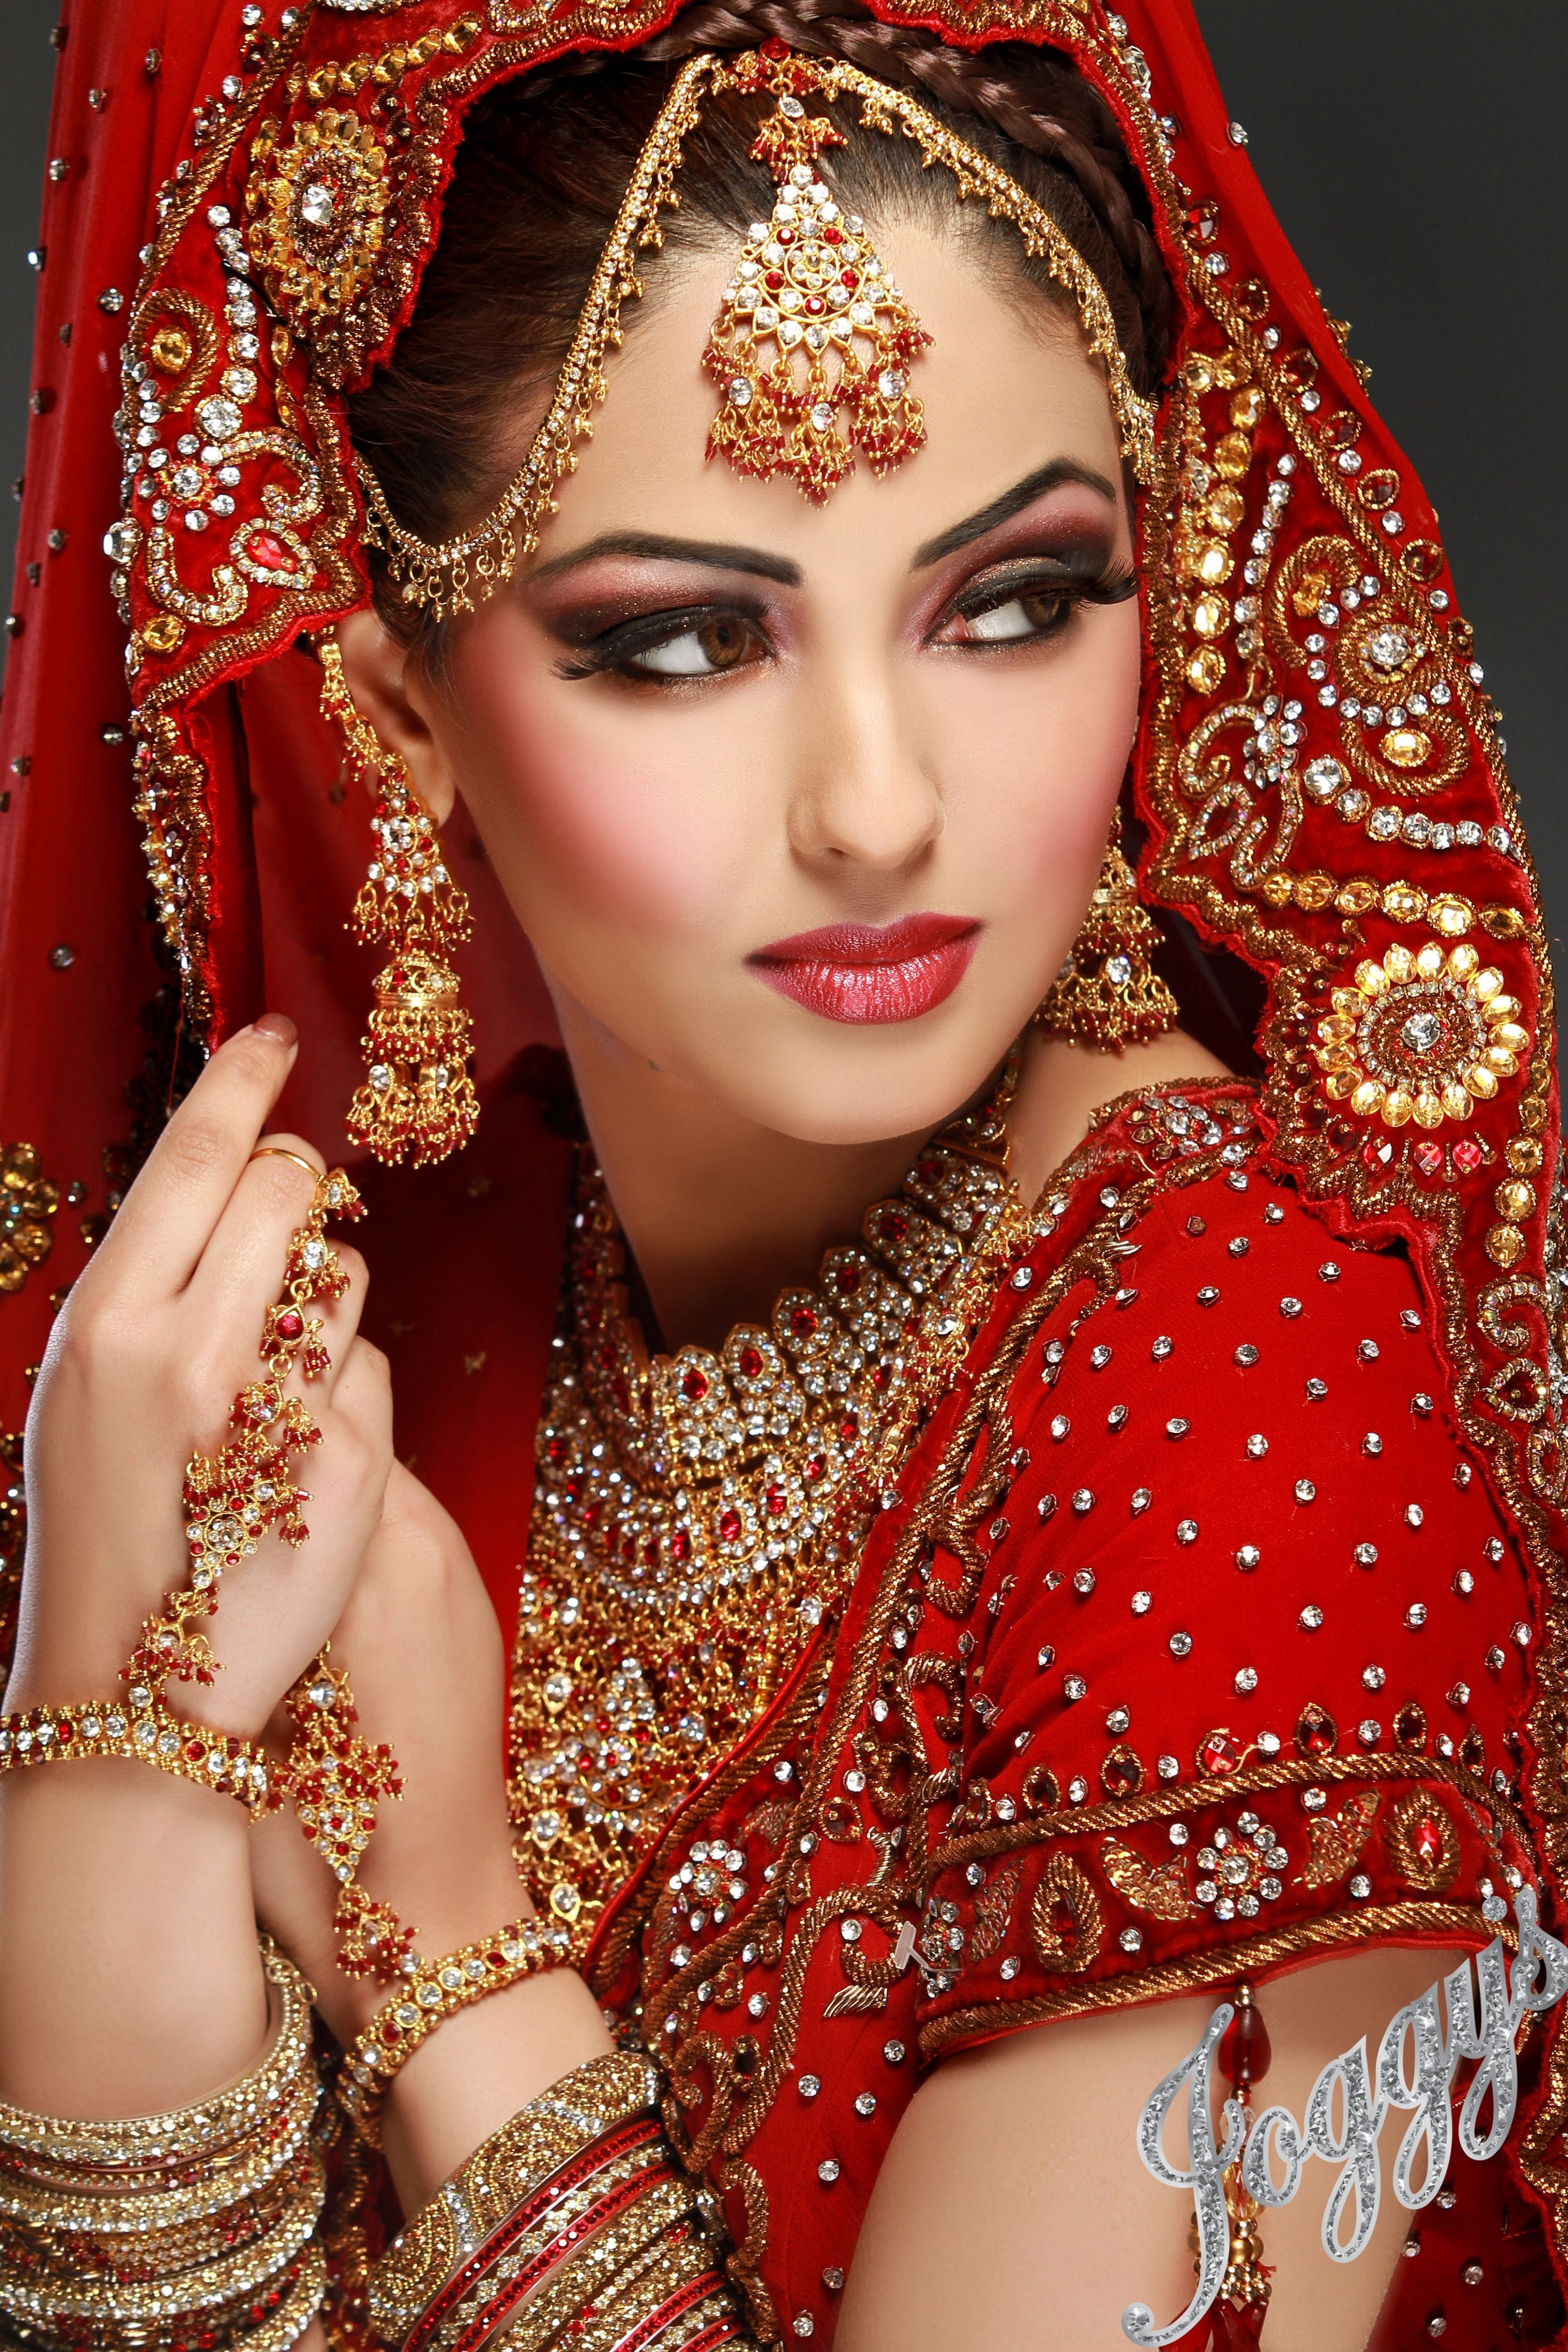 1000+ images about arabic roots on Pinterest   Arabic ...